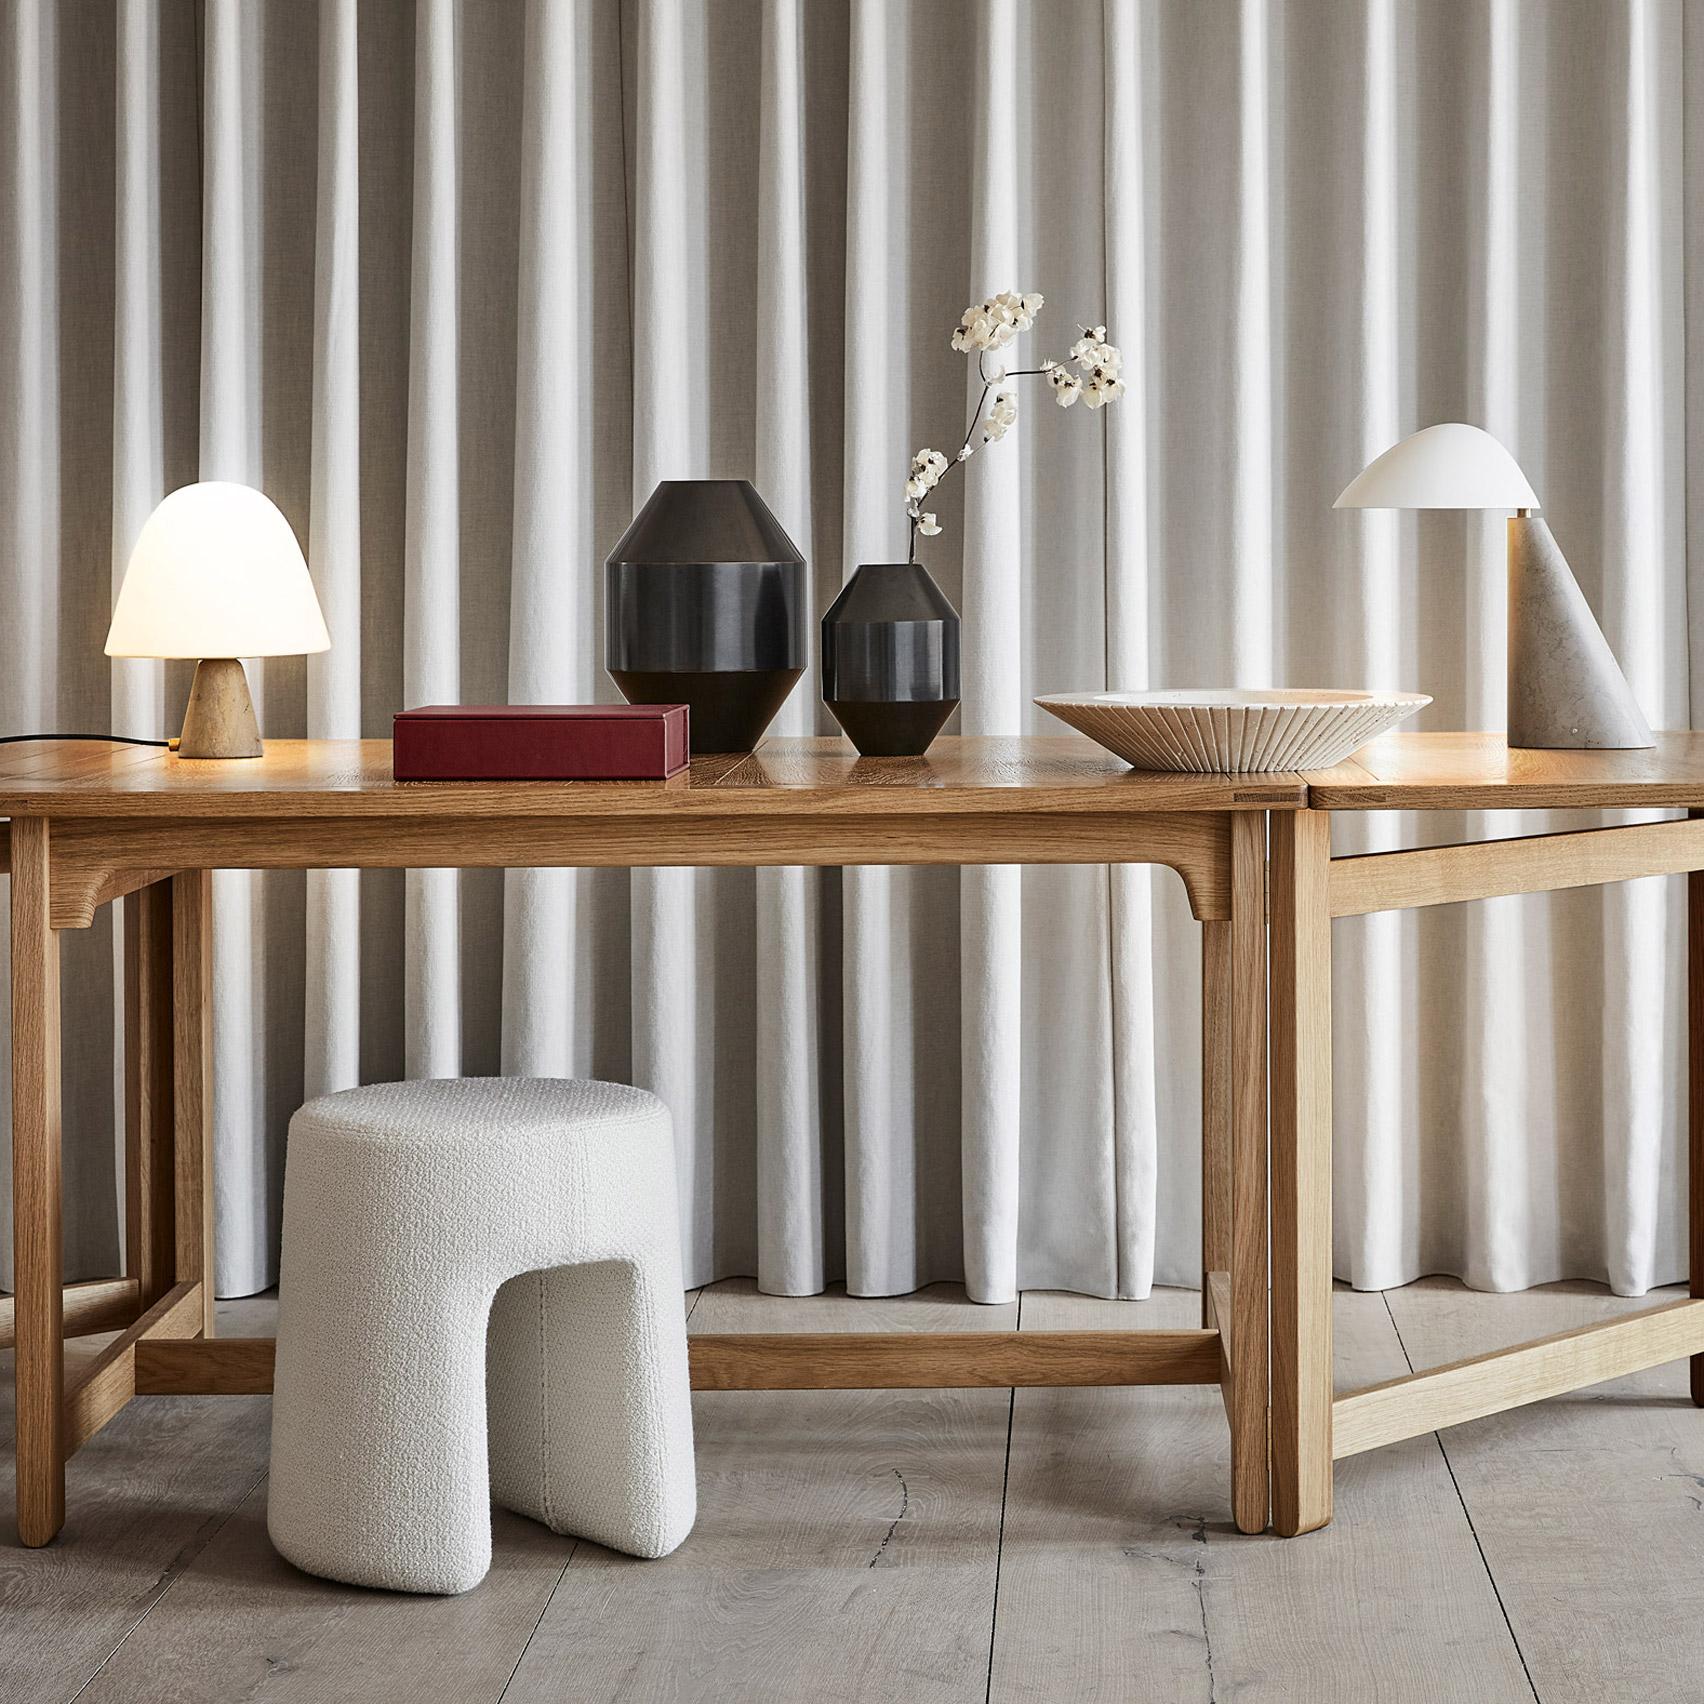 An overview of the Complements collection by Fredericia